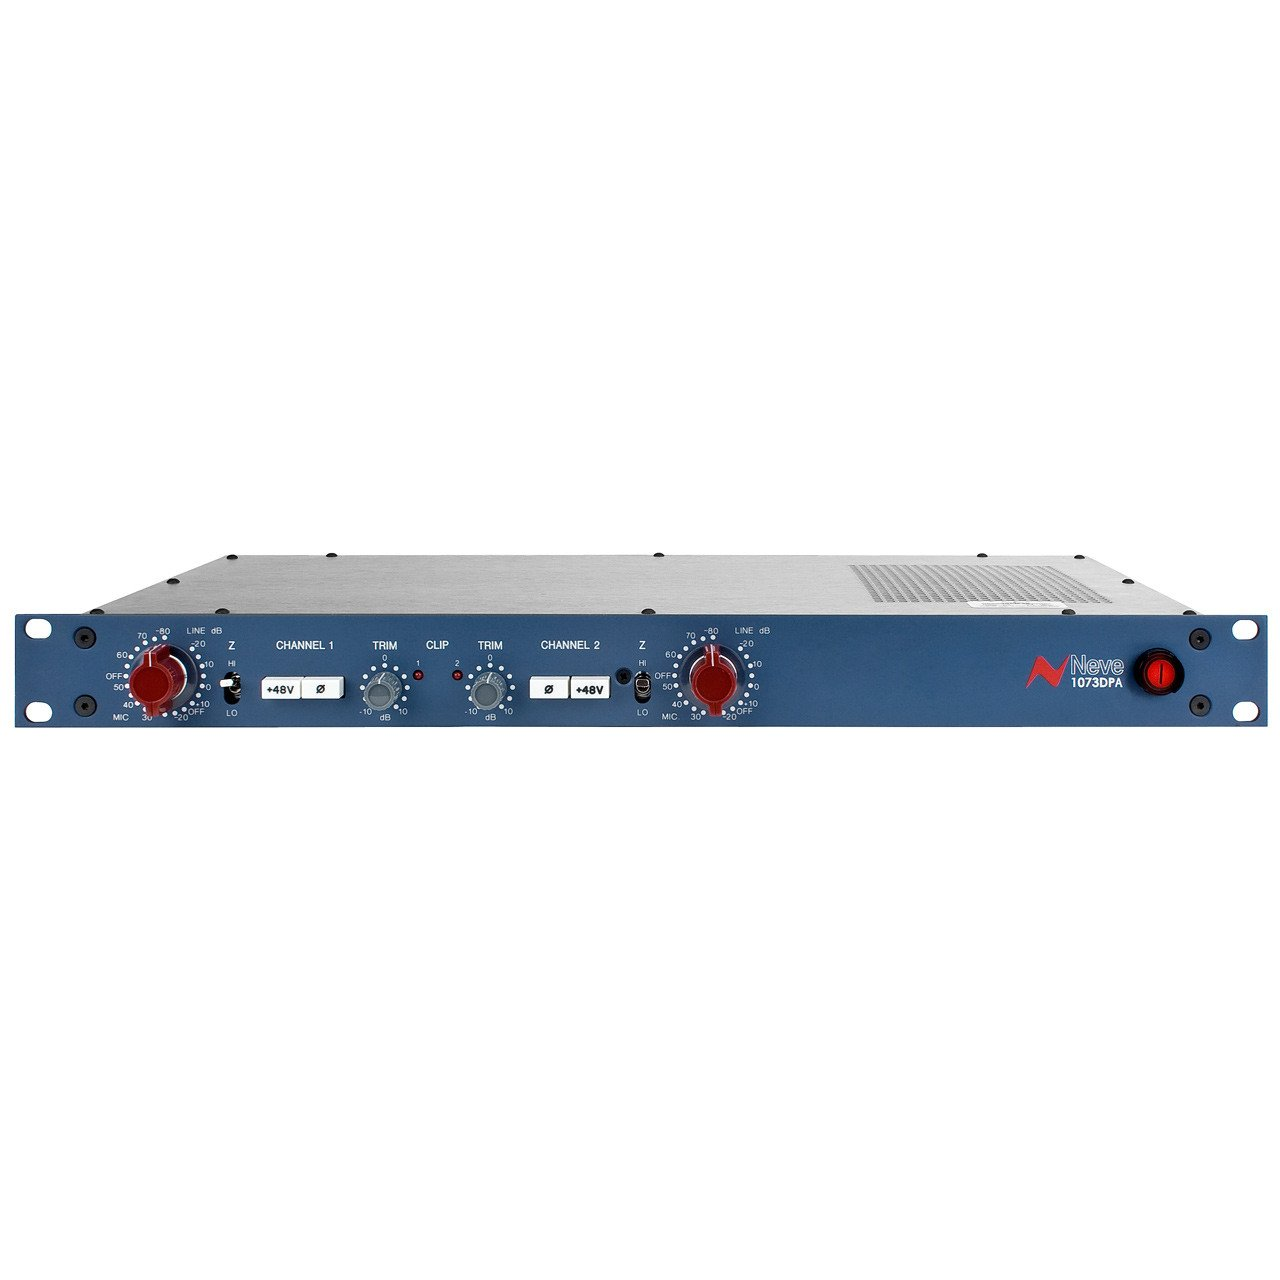 Preamps/Channel Strips - Neve AMS 1073 DPA Preamplifier